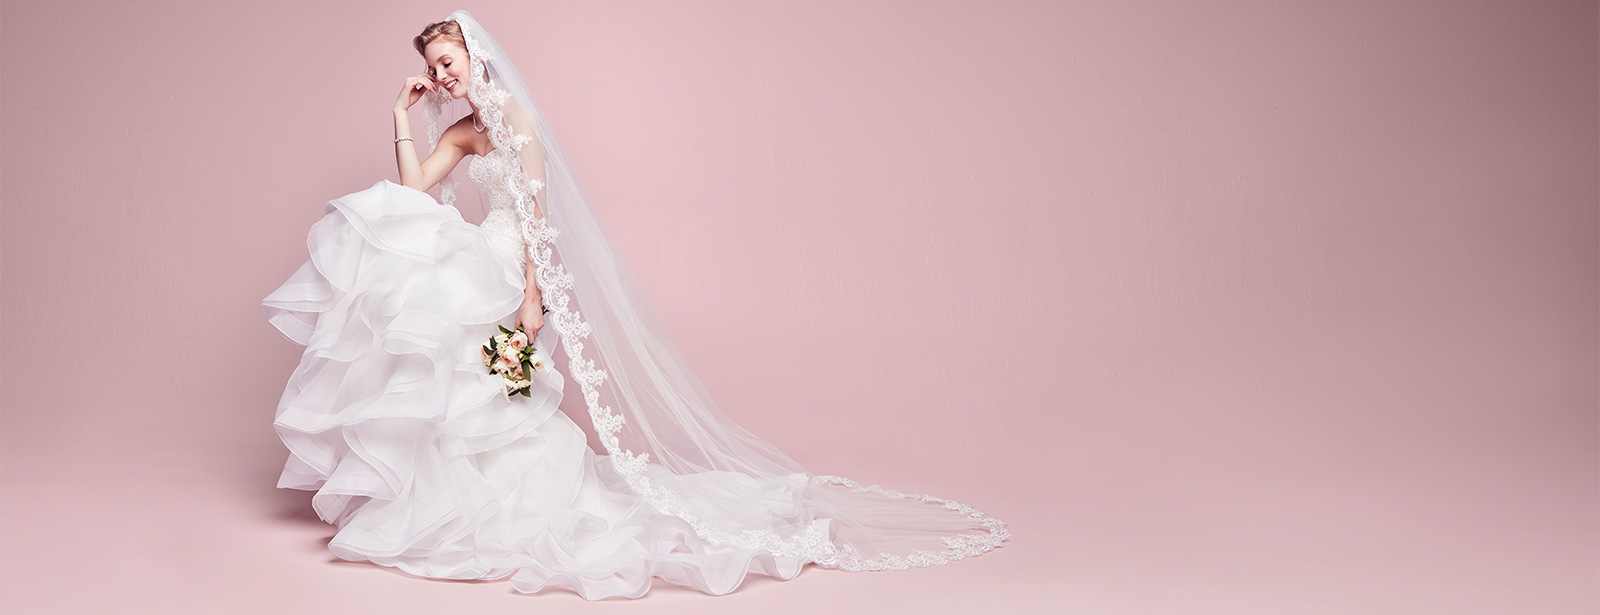 Seated bride wearing long veil with lace edging